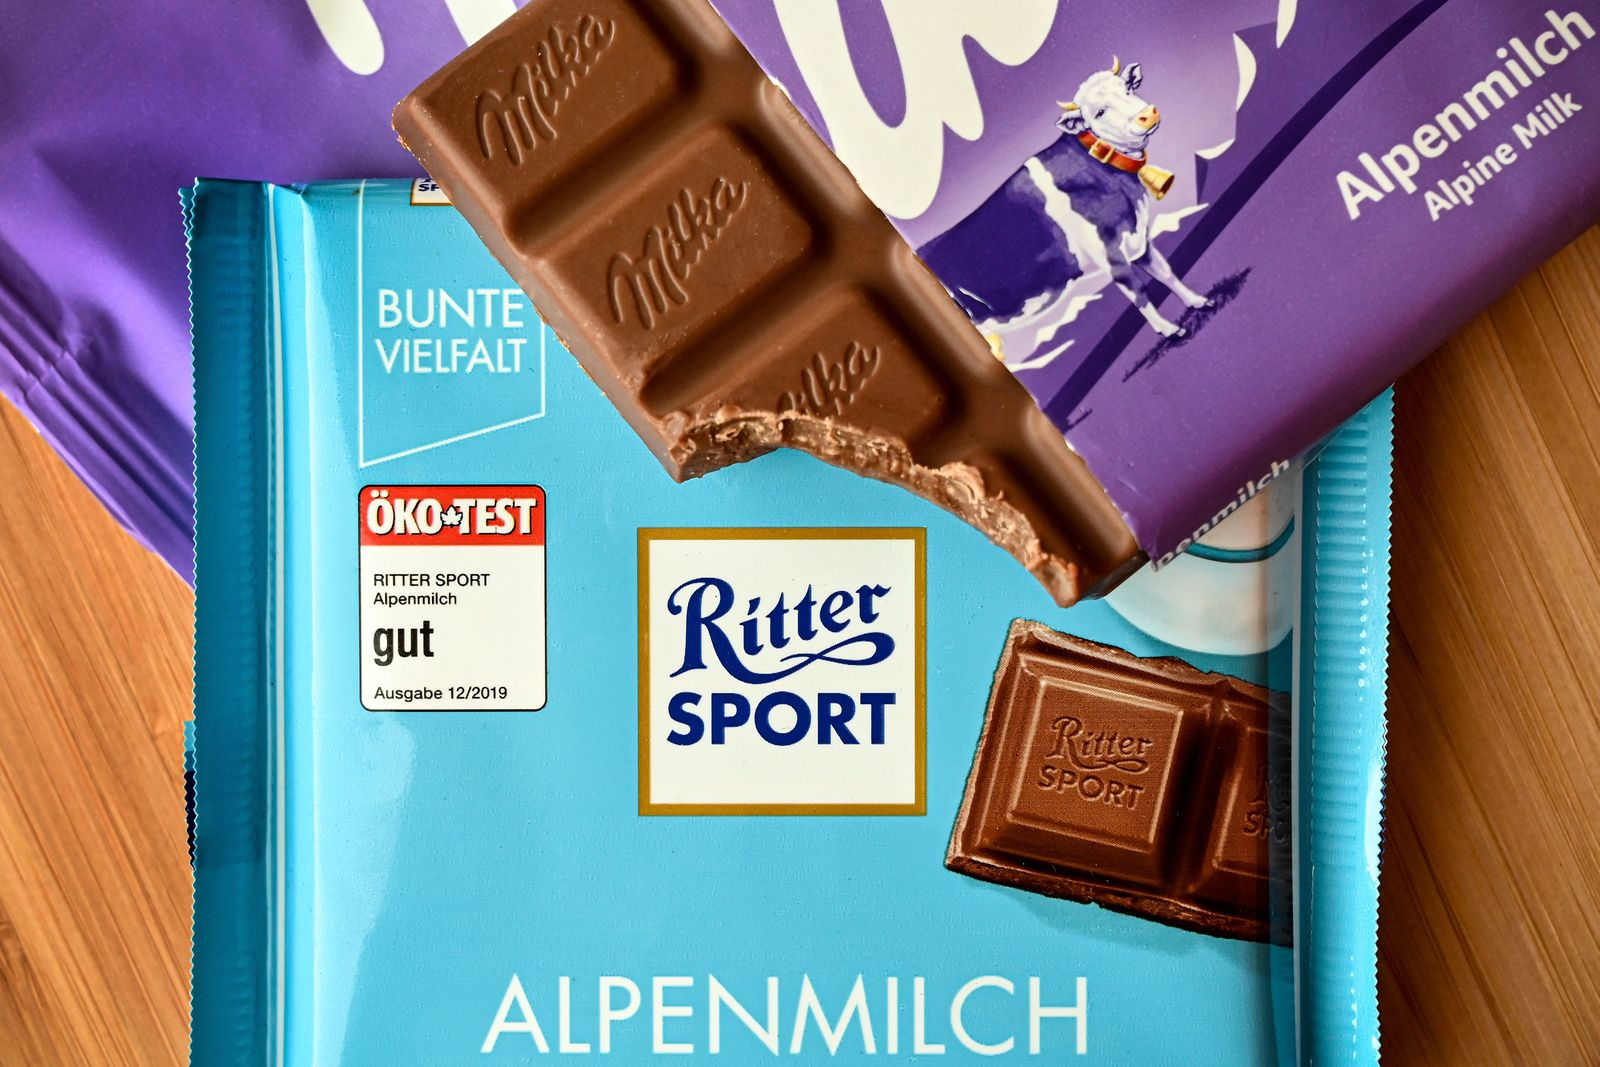 German Federal Court to announce its decision in a chocolate patent lawsuit between Milka and Ritter Sport, Duesseldorf, Germany - 17 Jul 2020